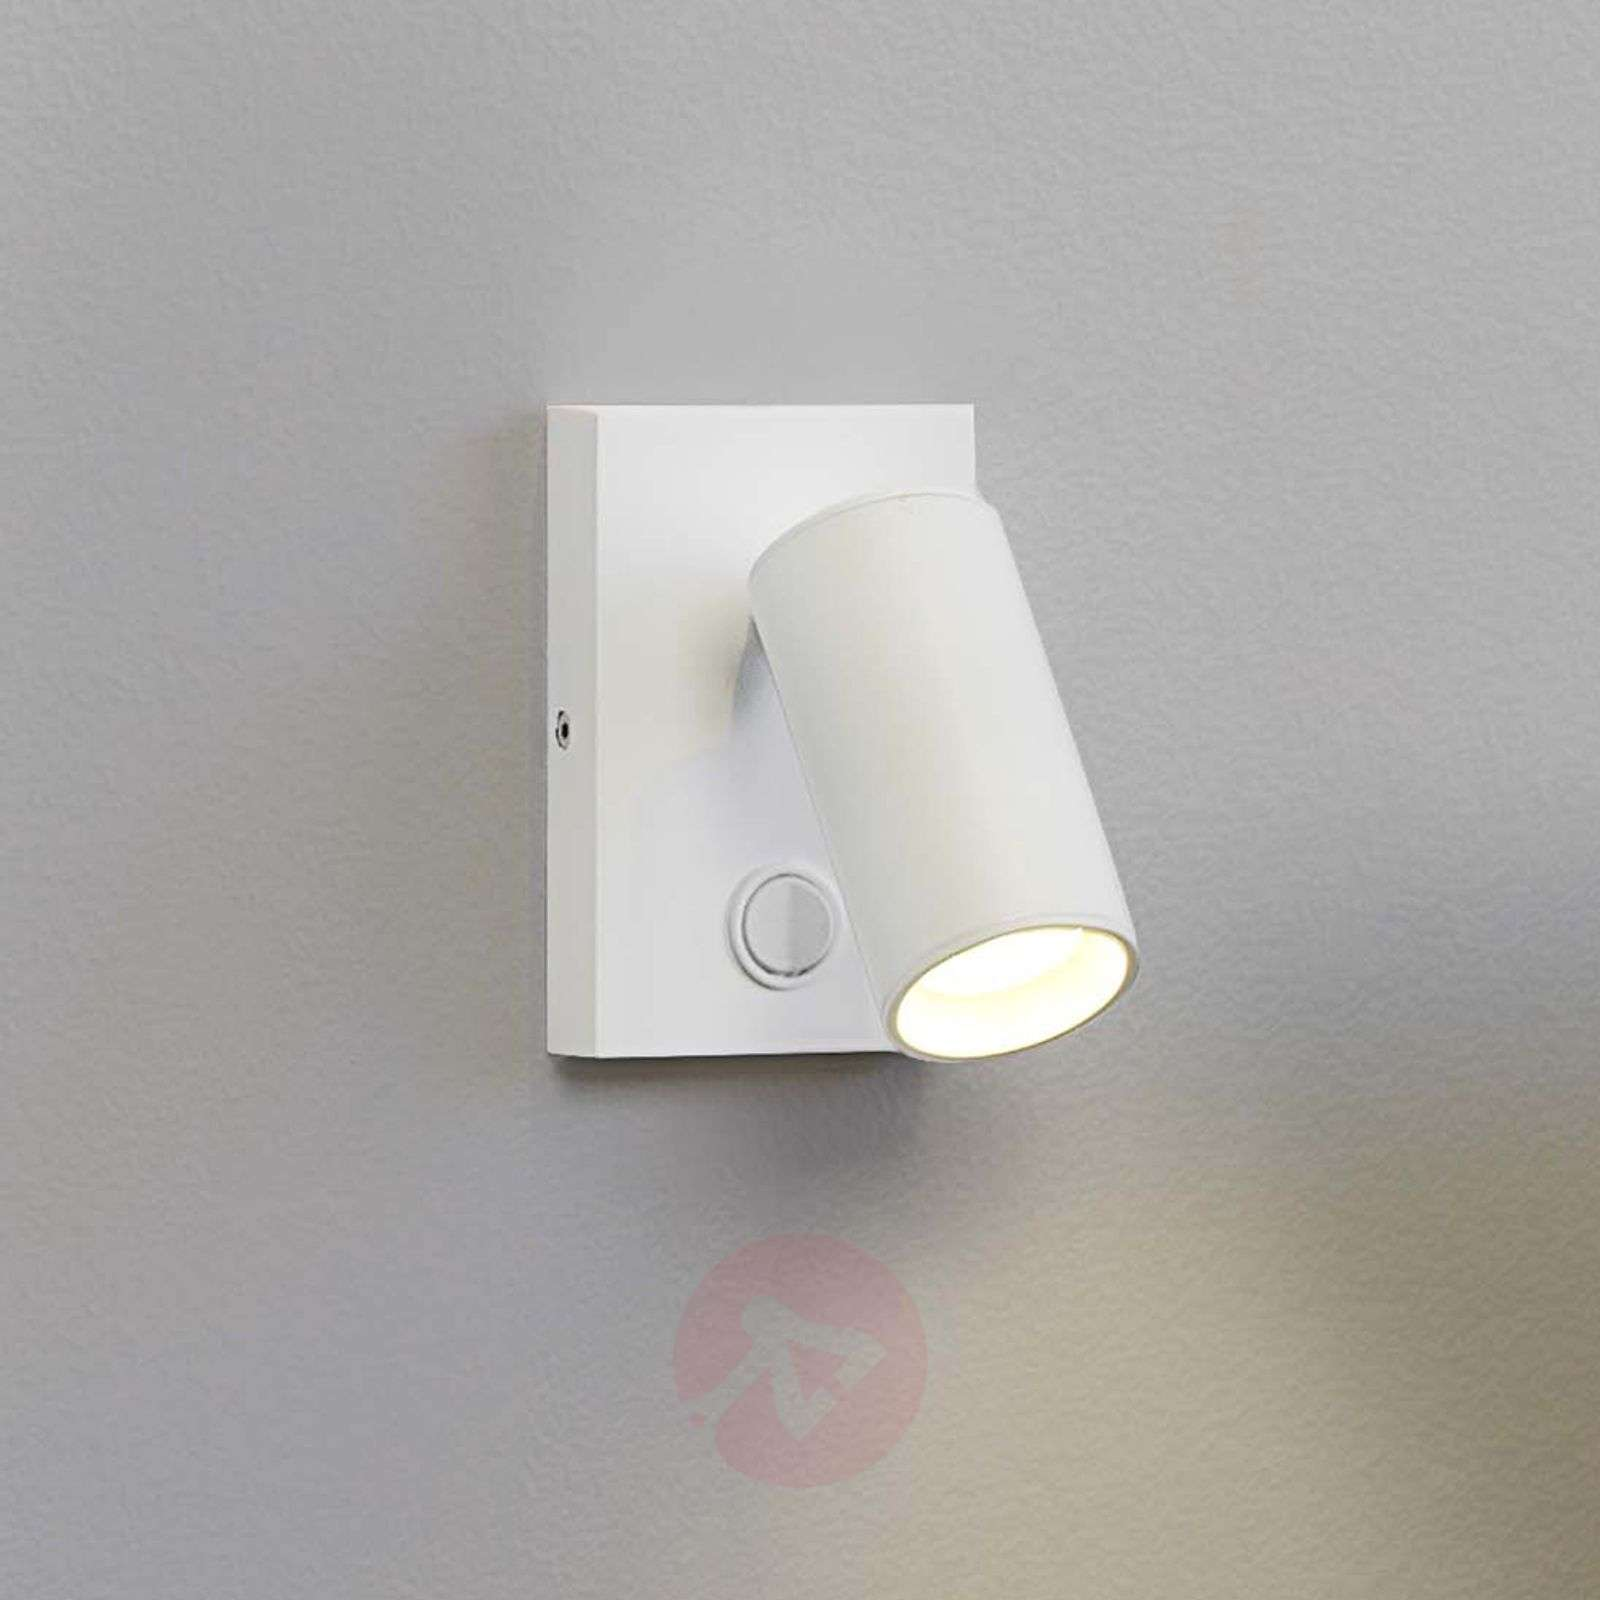 Small Led Wall Spotlight Tub With Switch Lights Ie